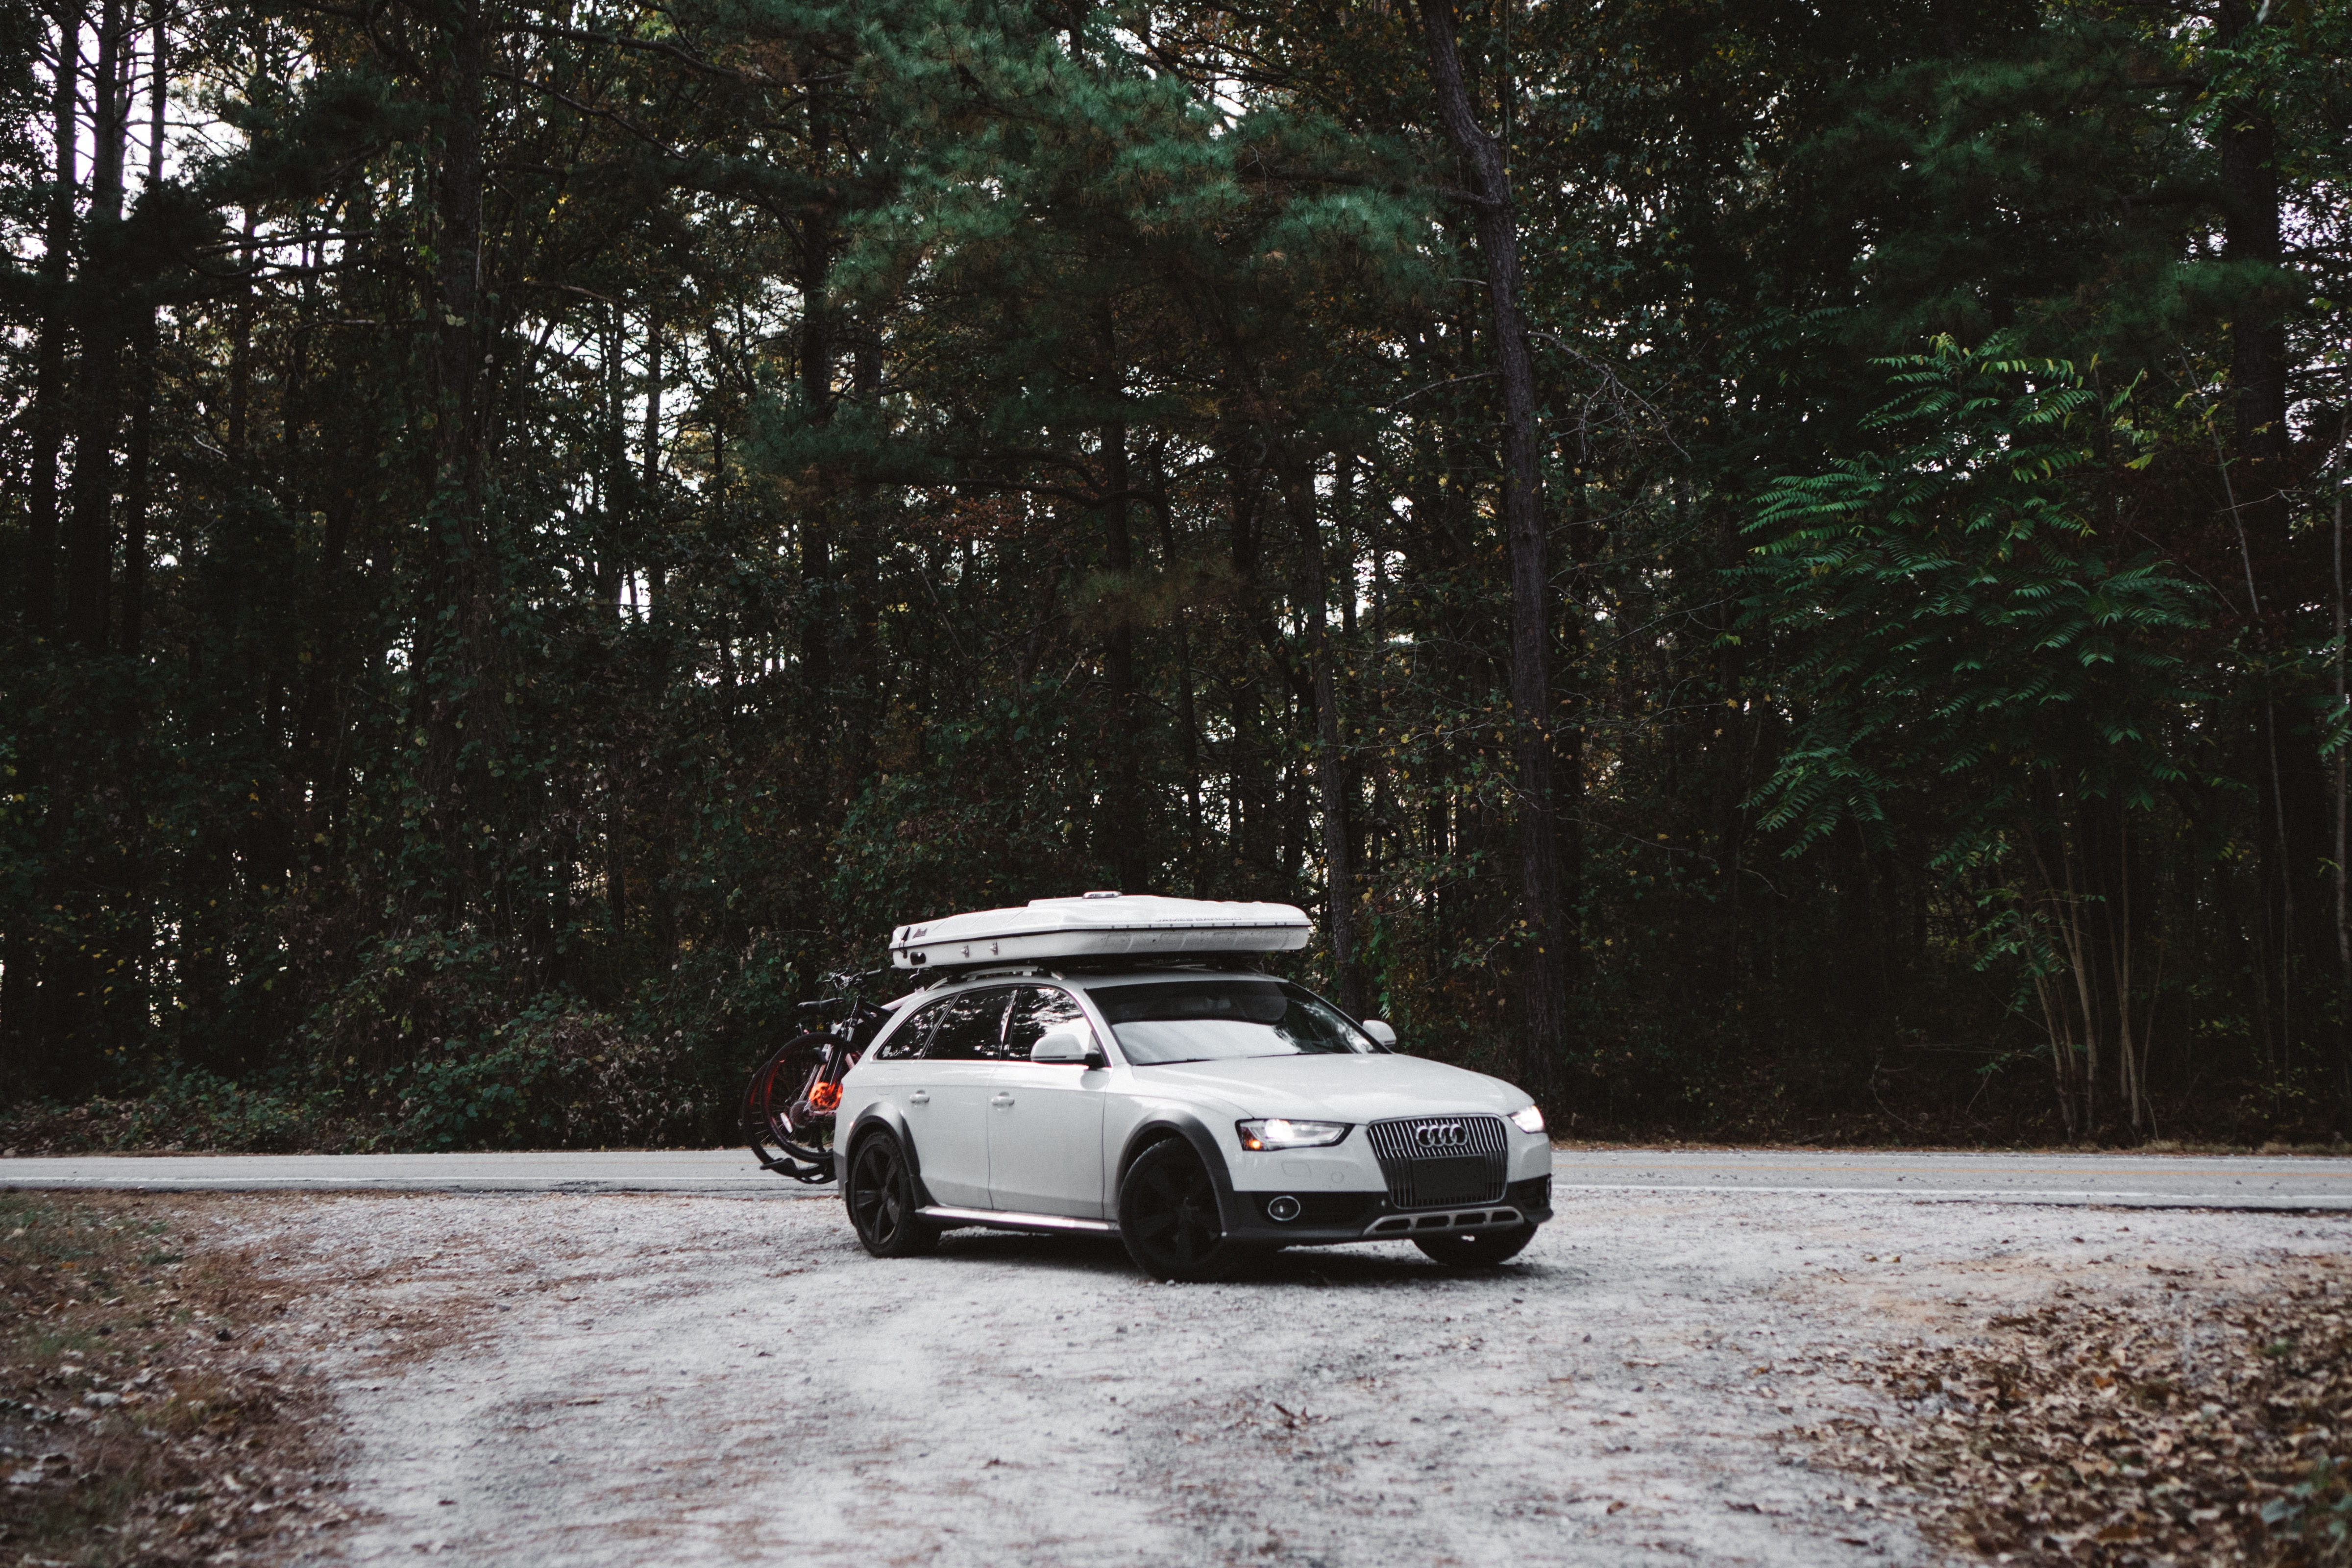 White Audi SUV in a campground with luggage on the roof.